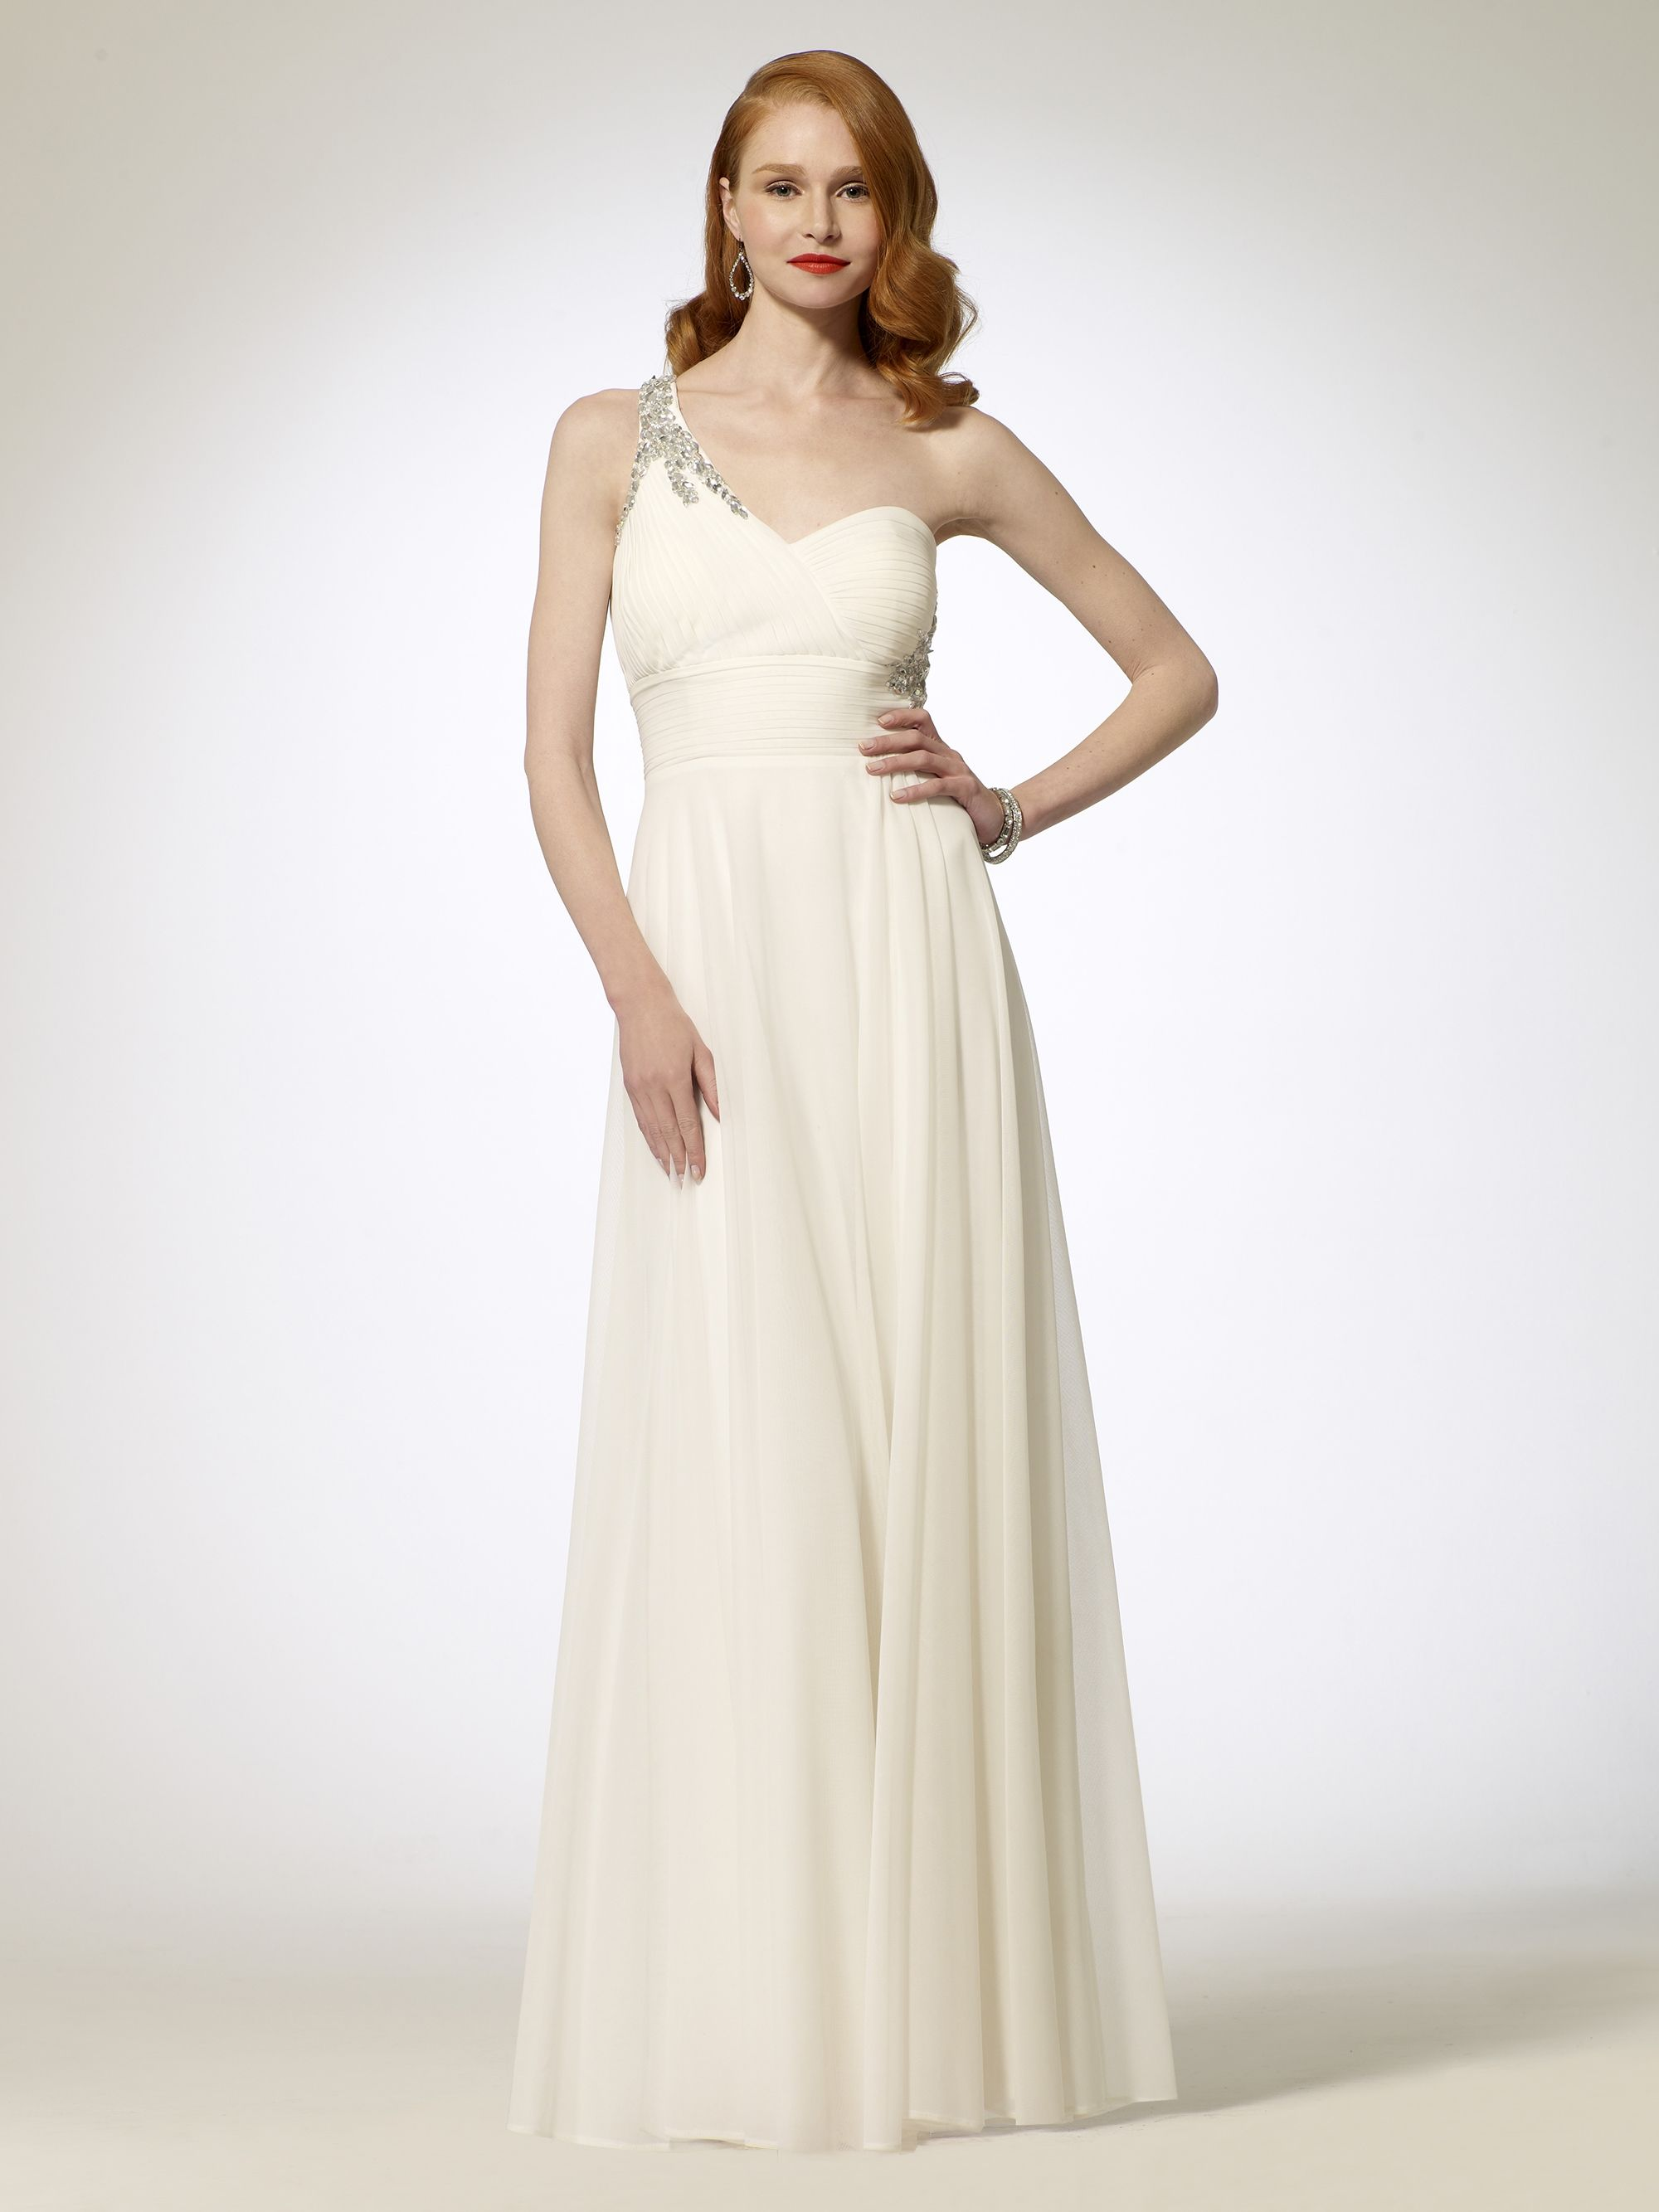 Dresses triple back strap gown caché wedding dancing gown